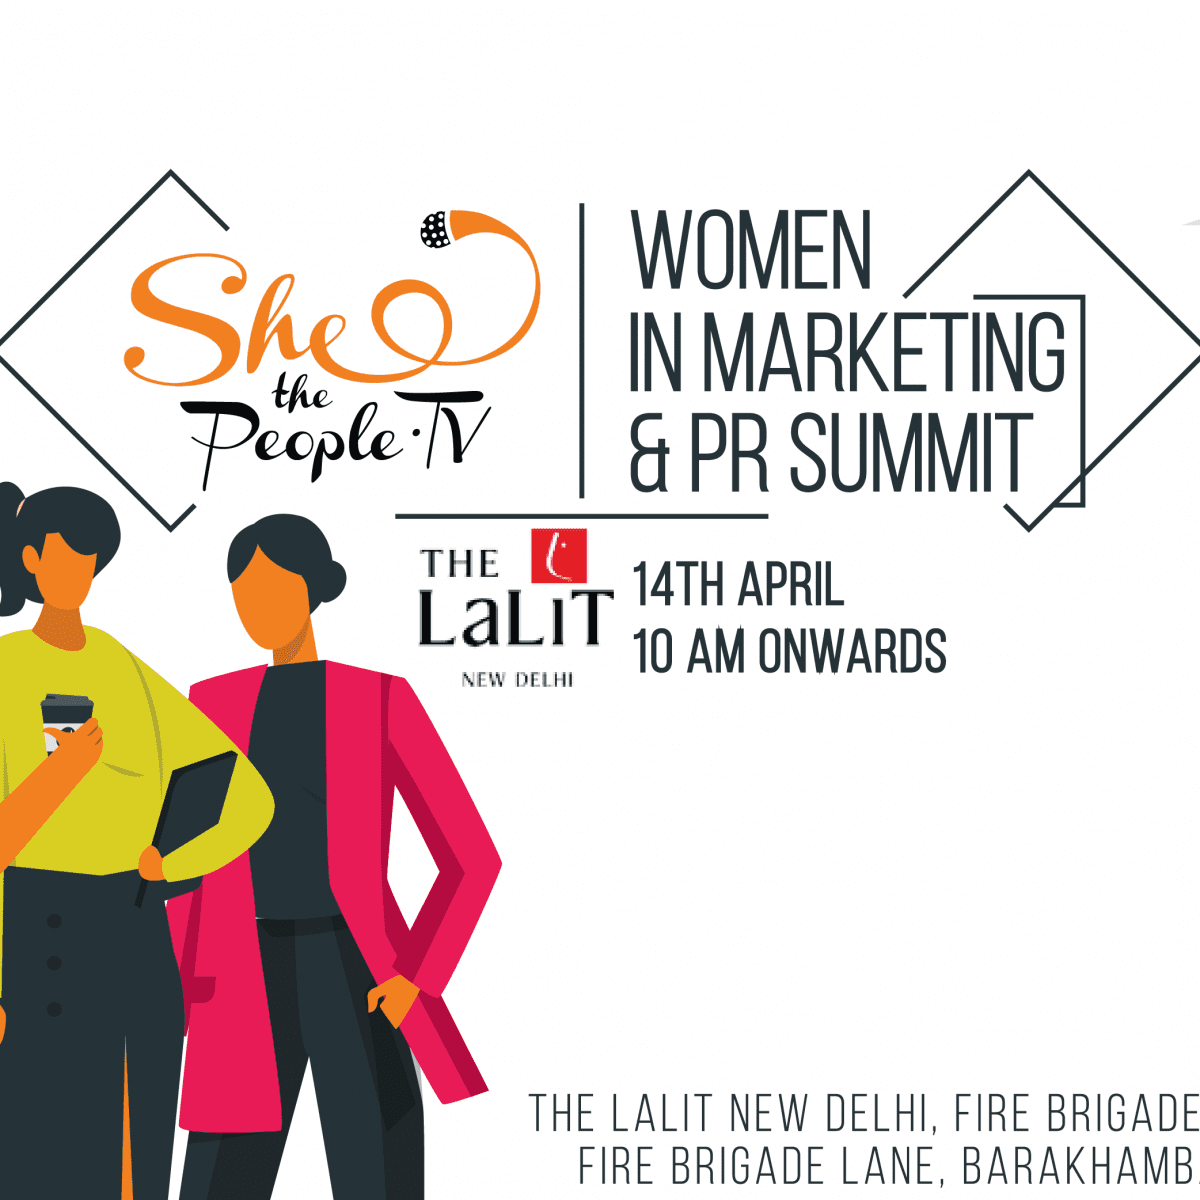 Women in Marketing & PR Summit on 14th April at The Lalit